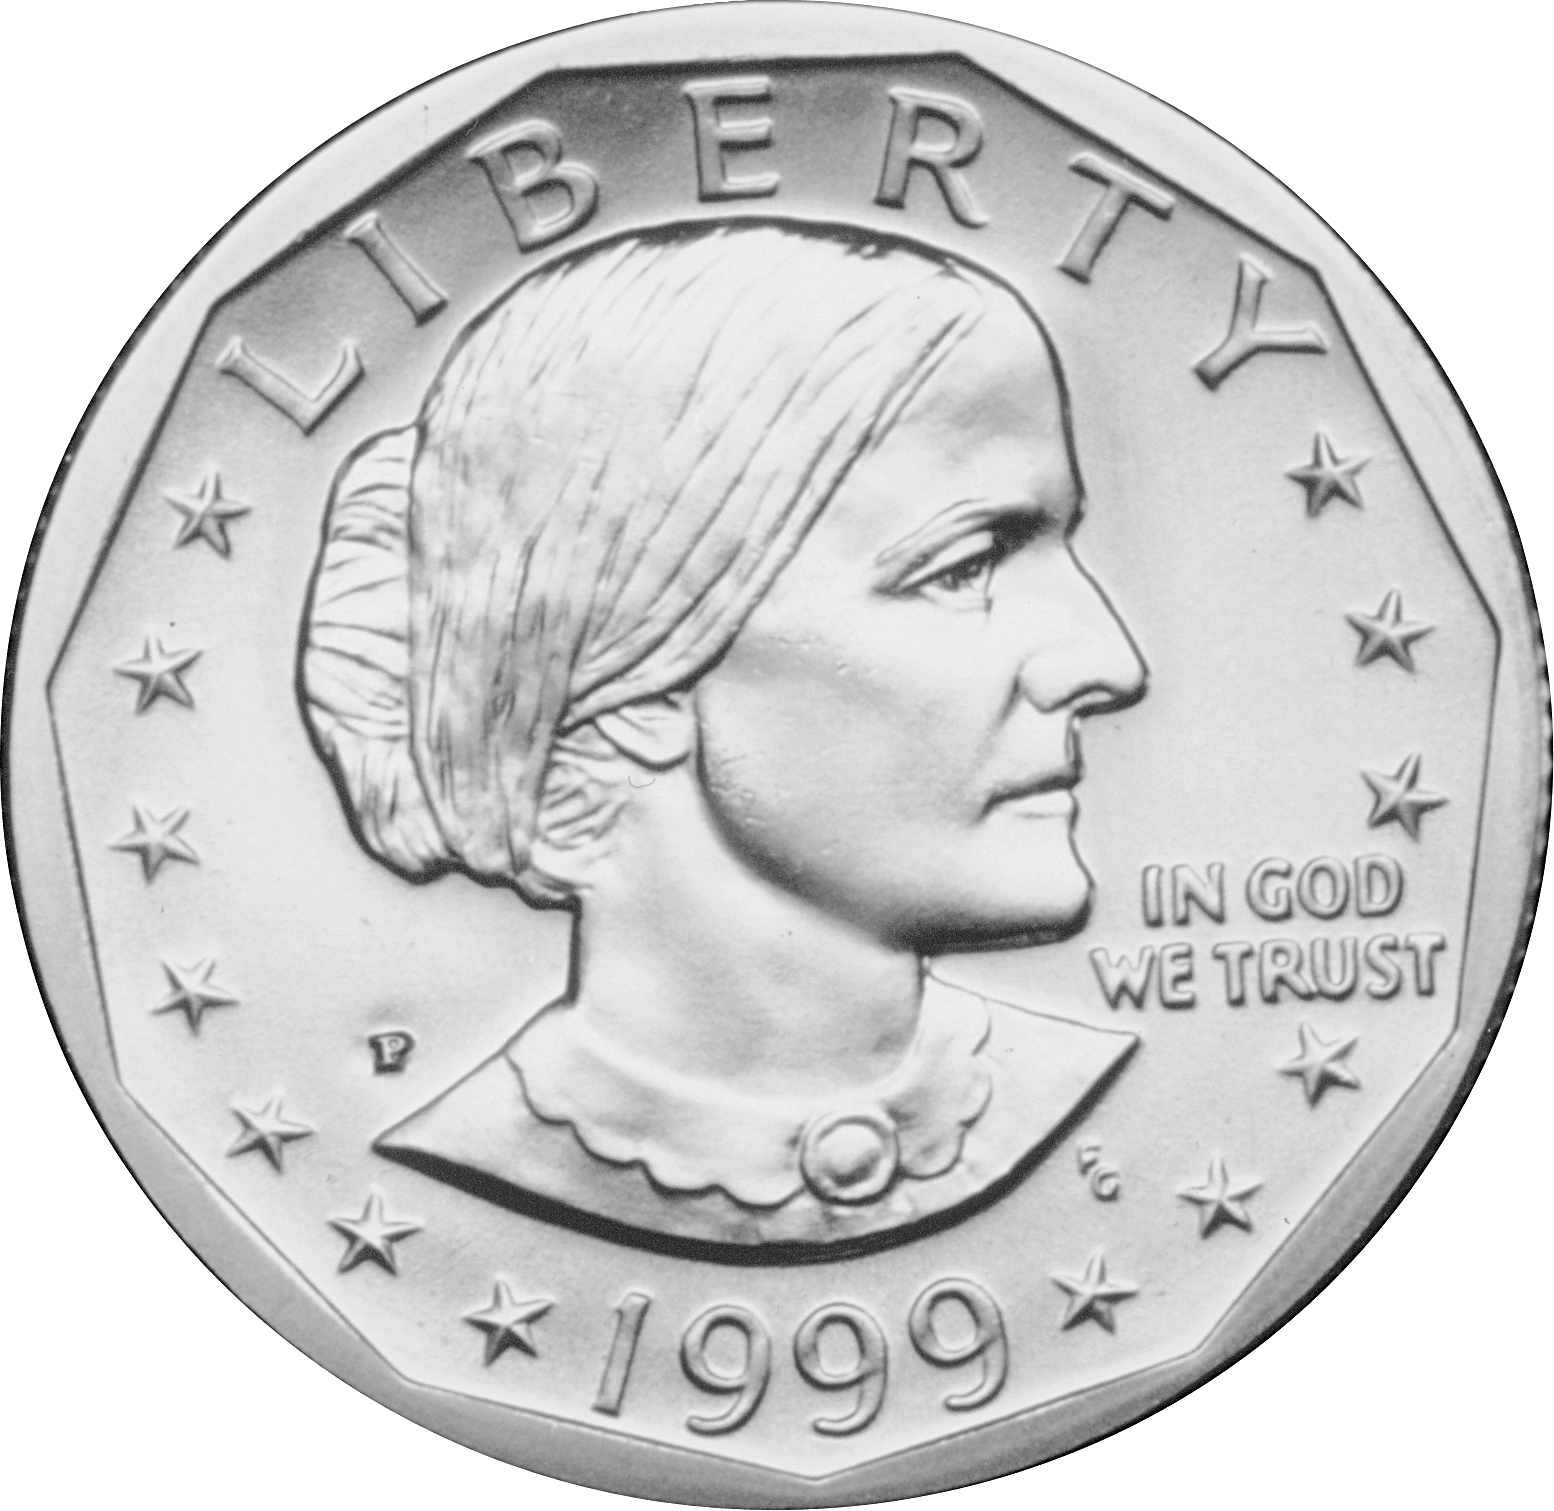 http://coins.thefuntimesguide.com/images/blogs/susan-b-anthony-obverse.png